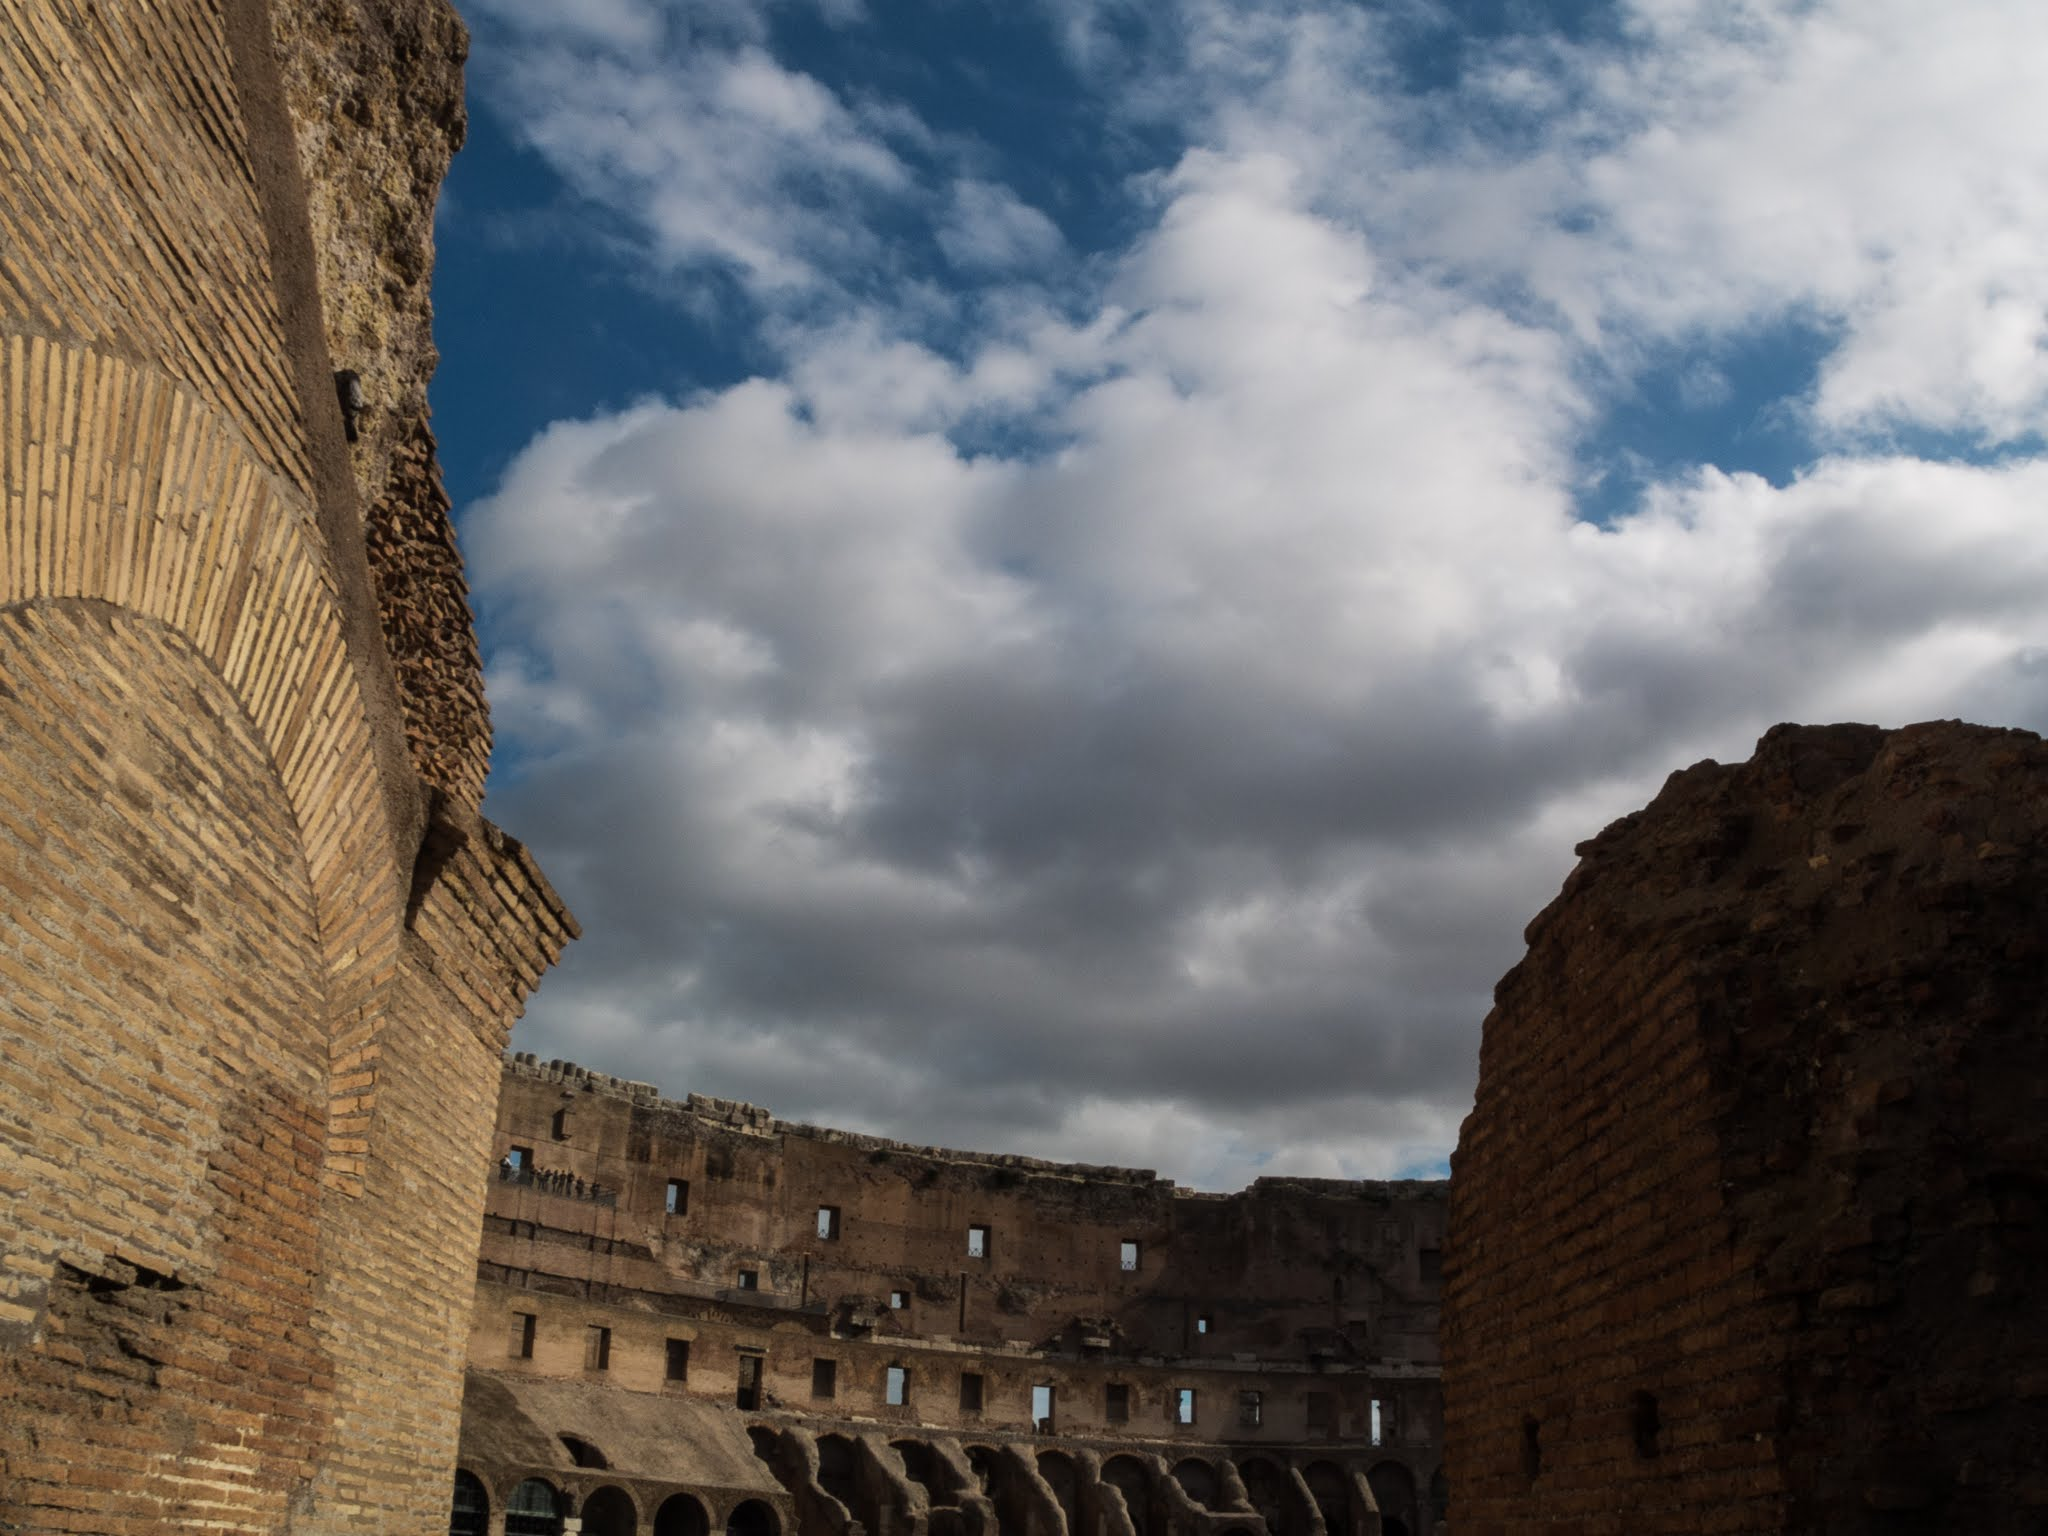 View of the inside the Colosseum from the entrance with a blue sky and clouds above.